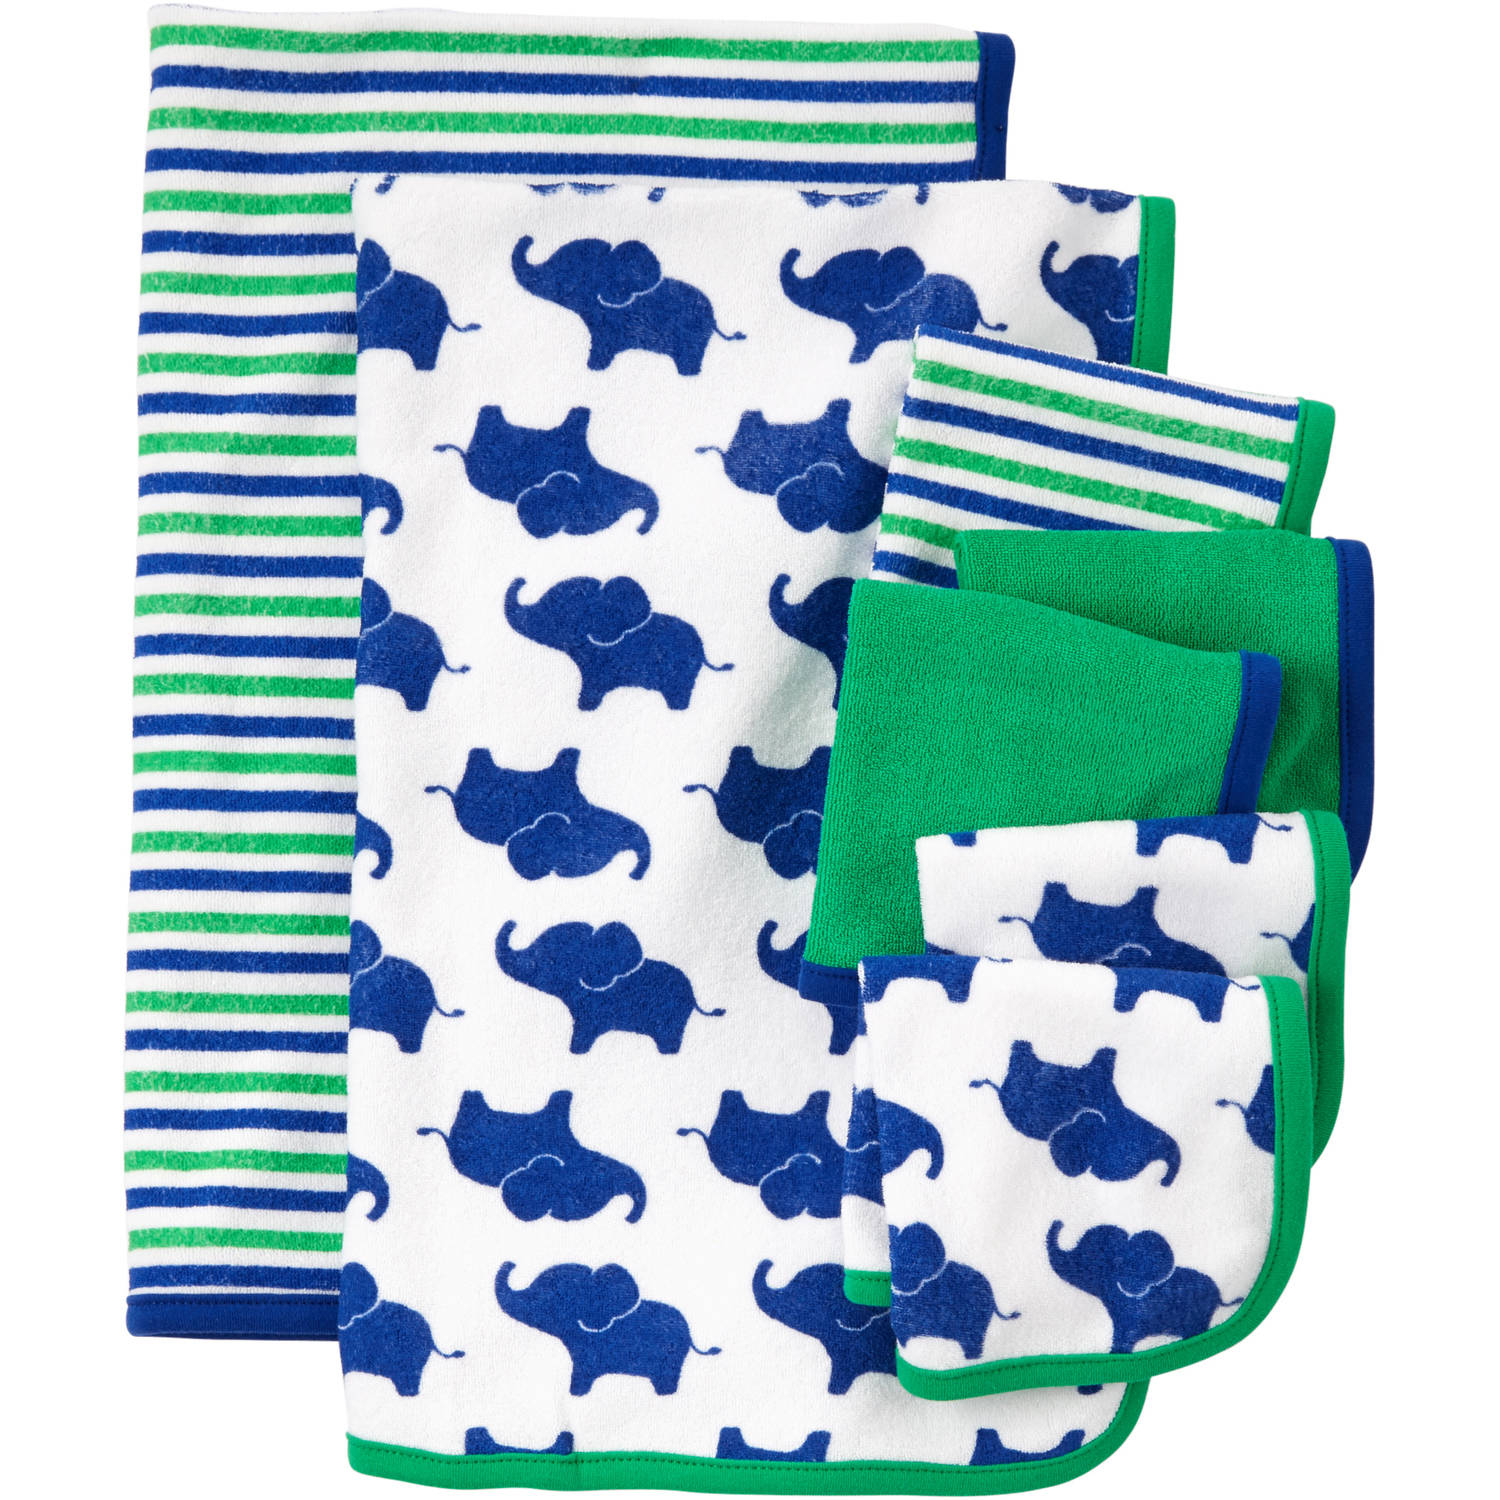 Child Of Mine Made By Carter's Newborn Baby Boy Washcloth And Towel Set, 7 Pack